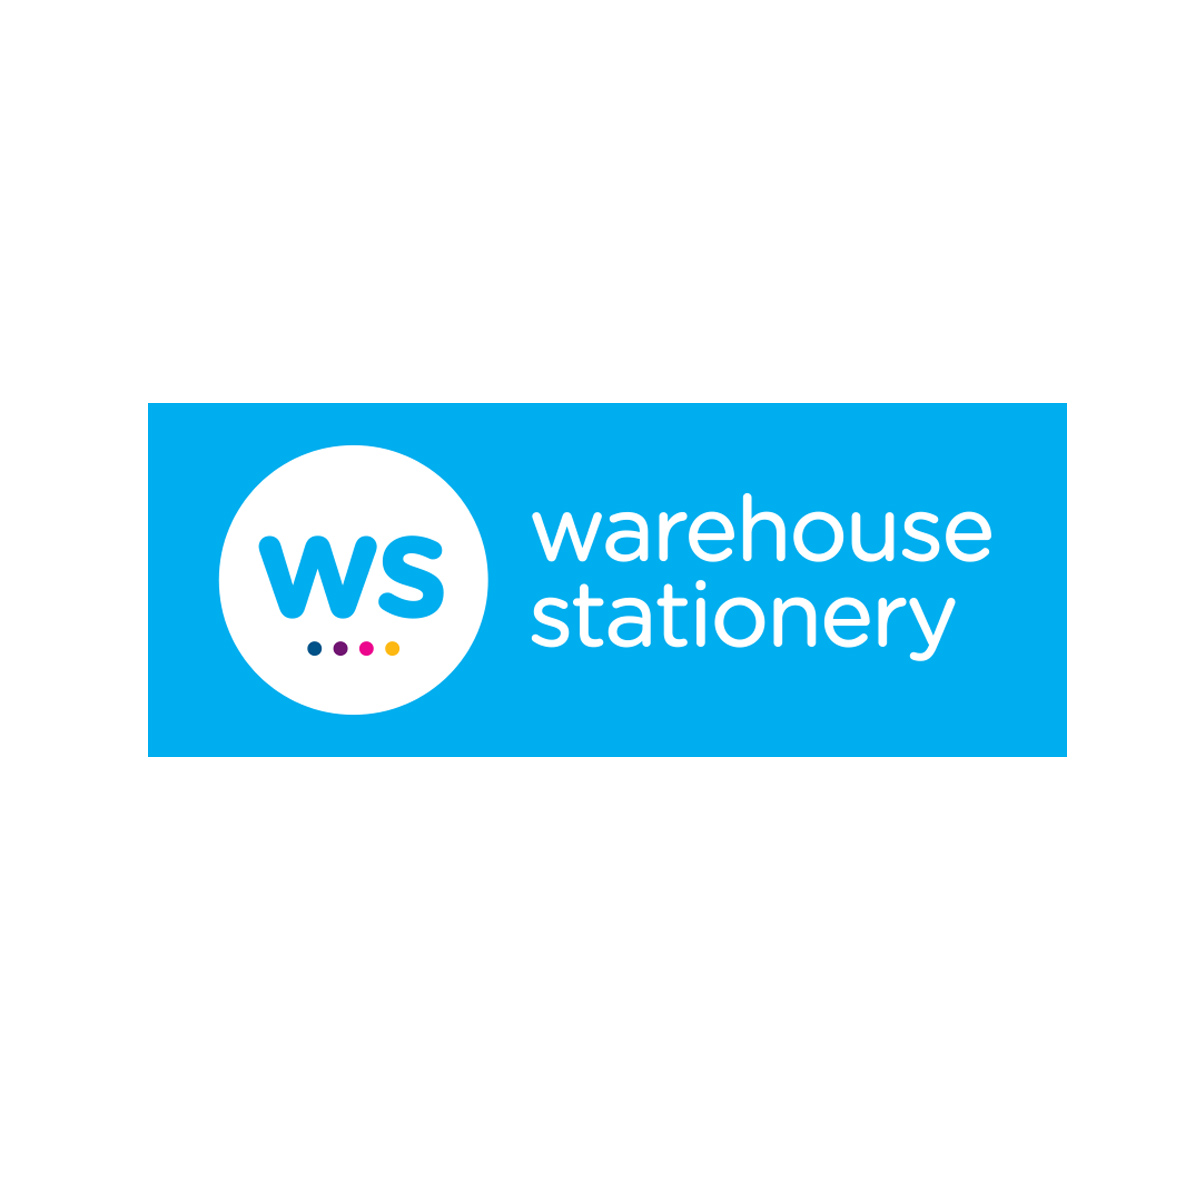 warehouse stationary.jpg